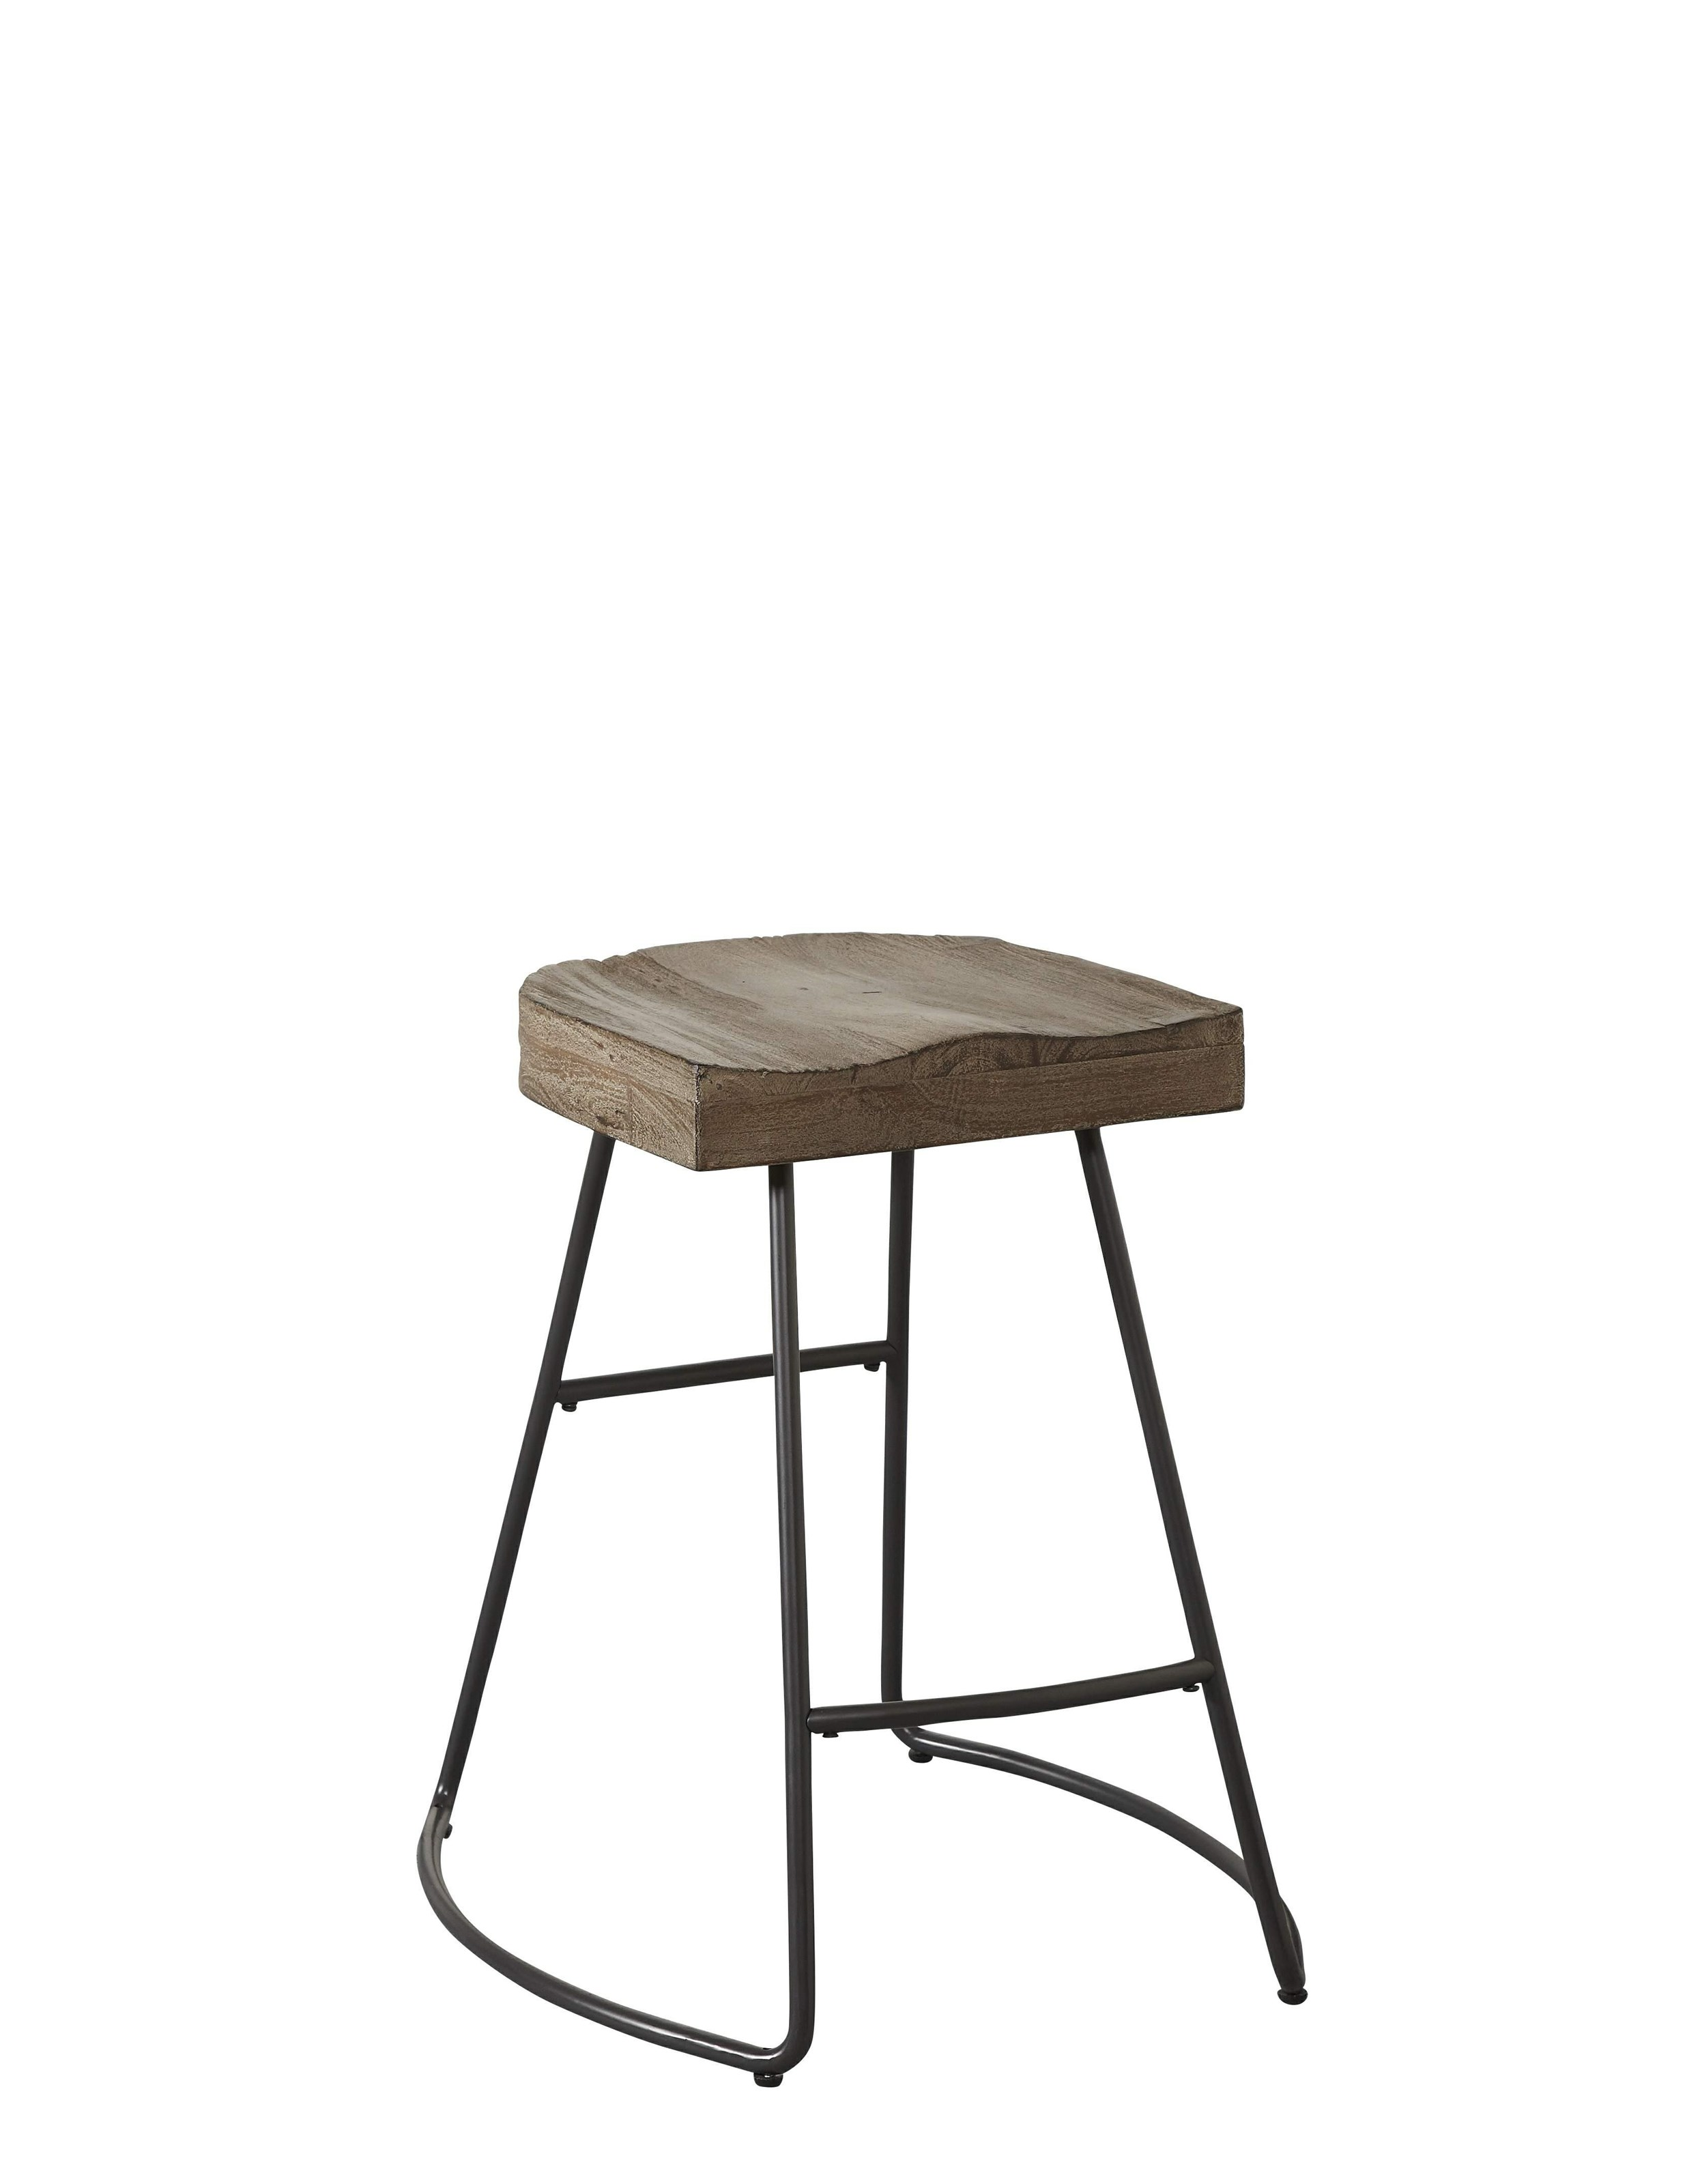 Avalon Furniture Barstools Saddle Seat Counter Stool - Item Number: B2015-GC103